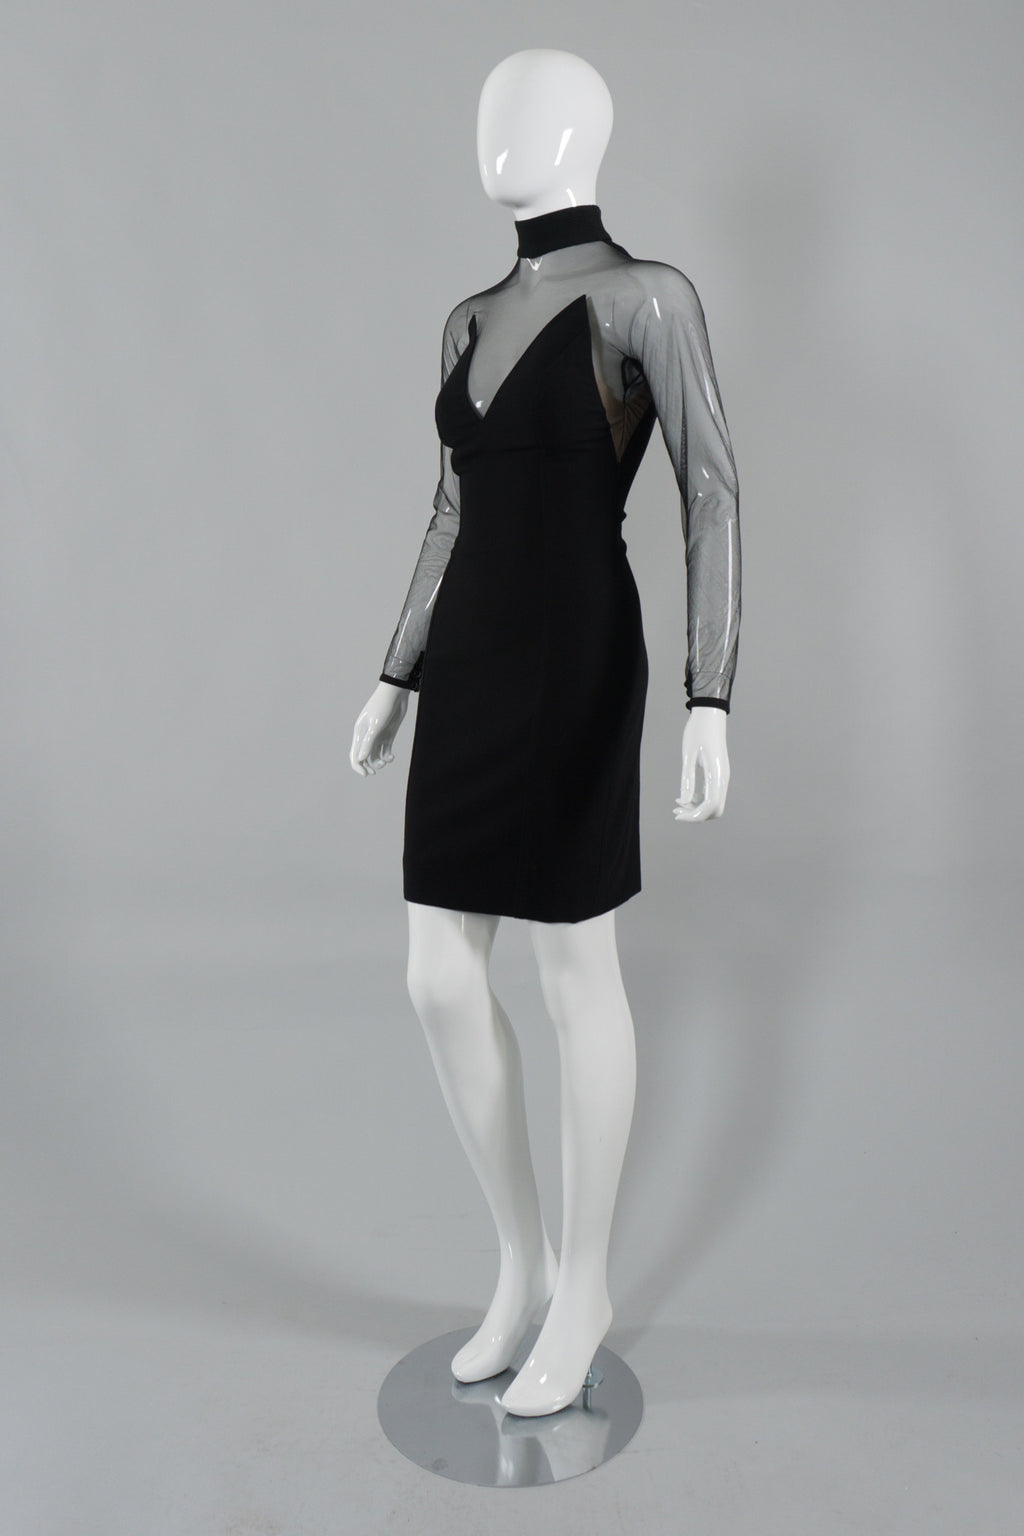 d7d8be98b41c Gianni Versace Sheer Panel Stretch Bodycon Dress Side